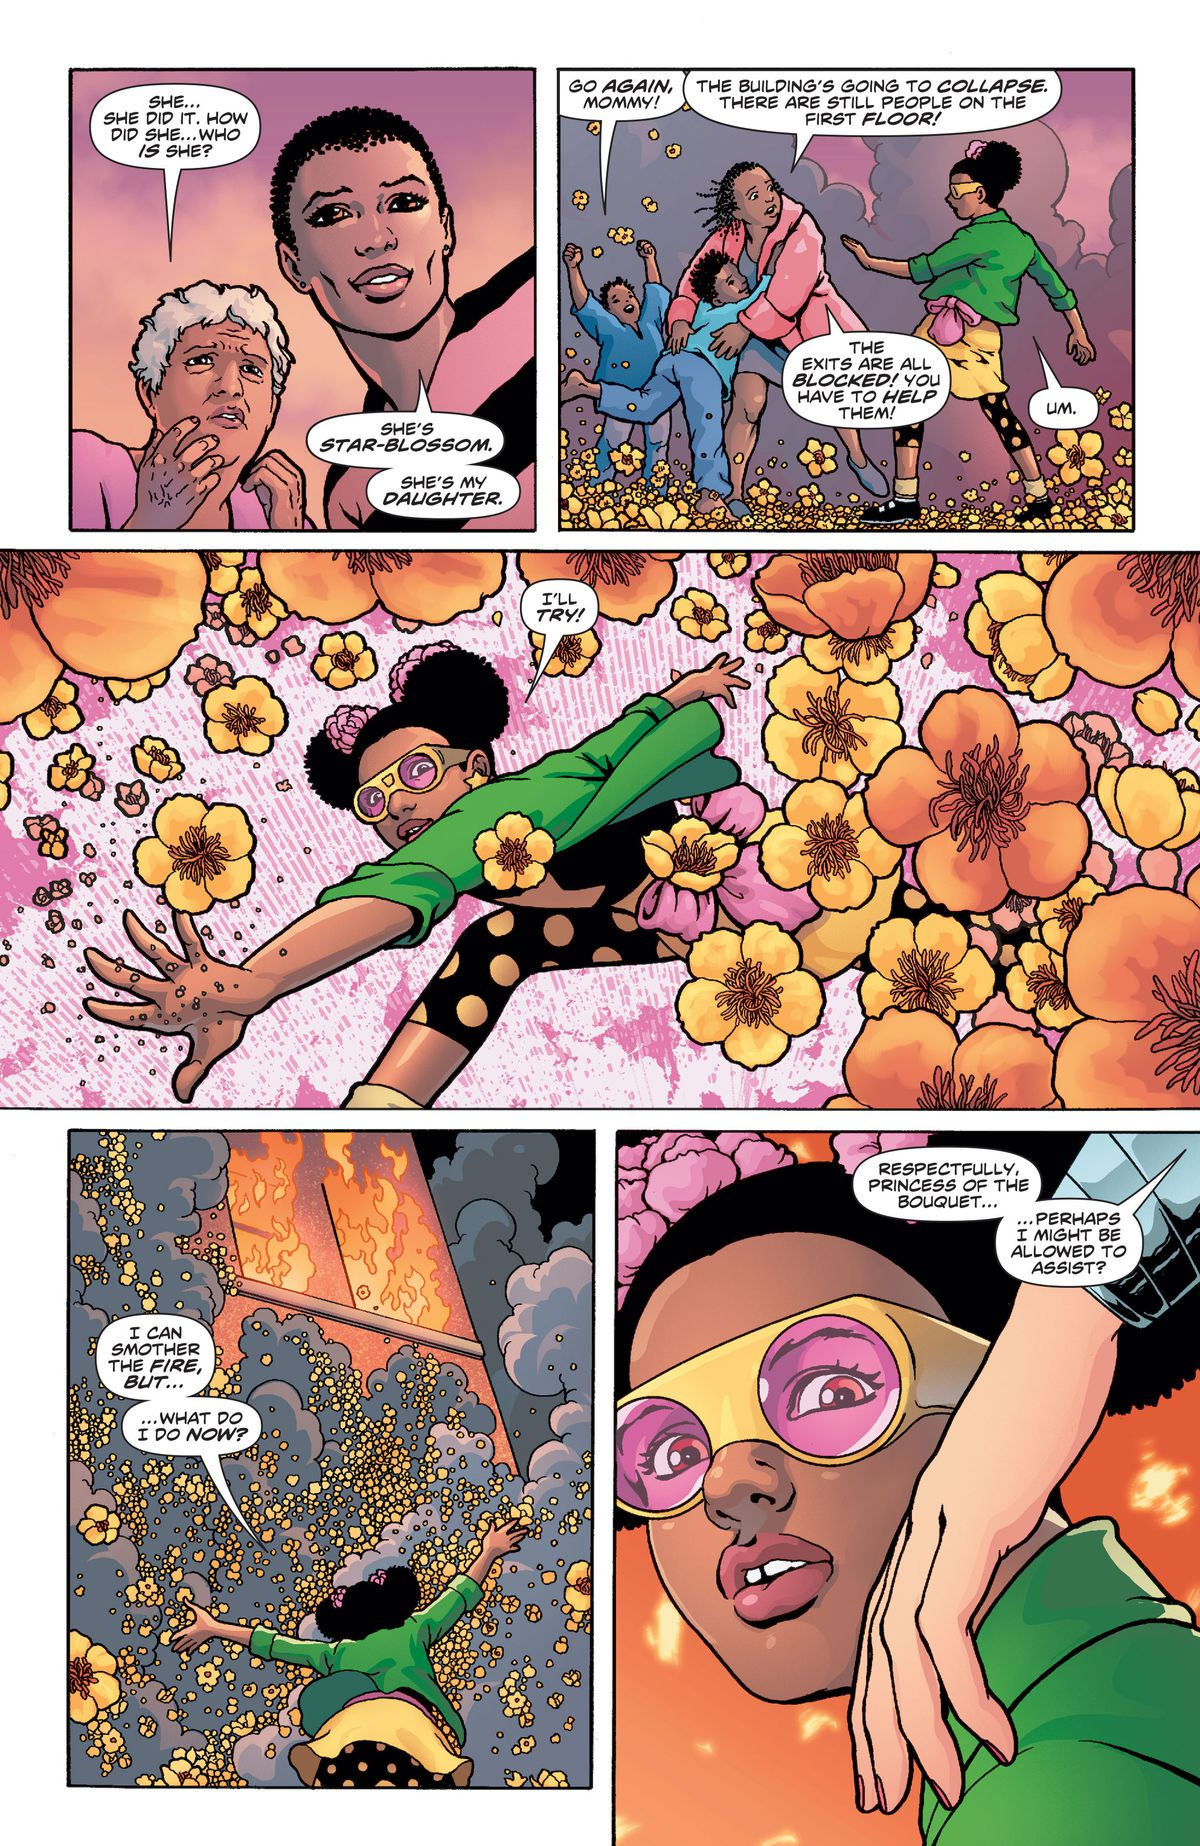 Star-Blossom saves a family from an apartment fire and attempts to smother the flames, when she feels a tap on her shoulder from Wonder Woman, in Wonder Woman #750, DC Comics (2020).